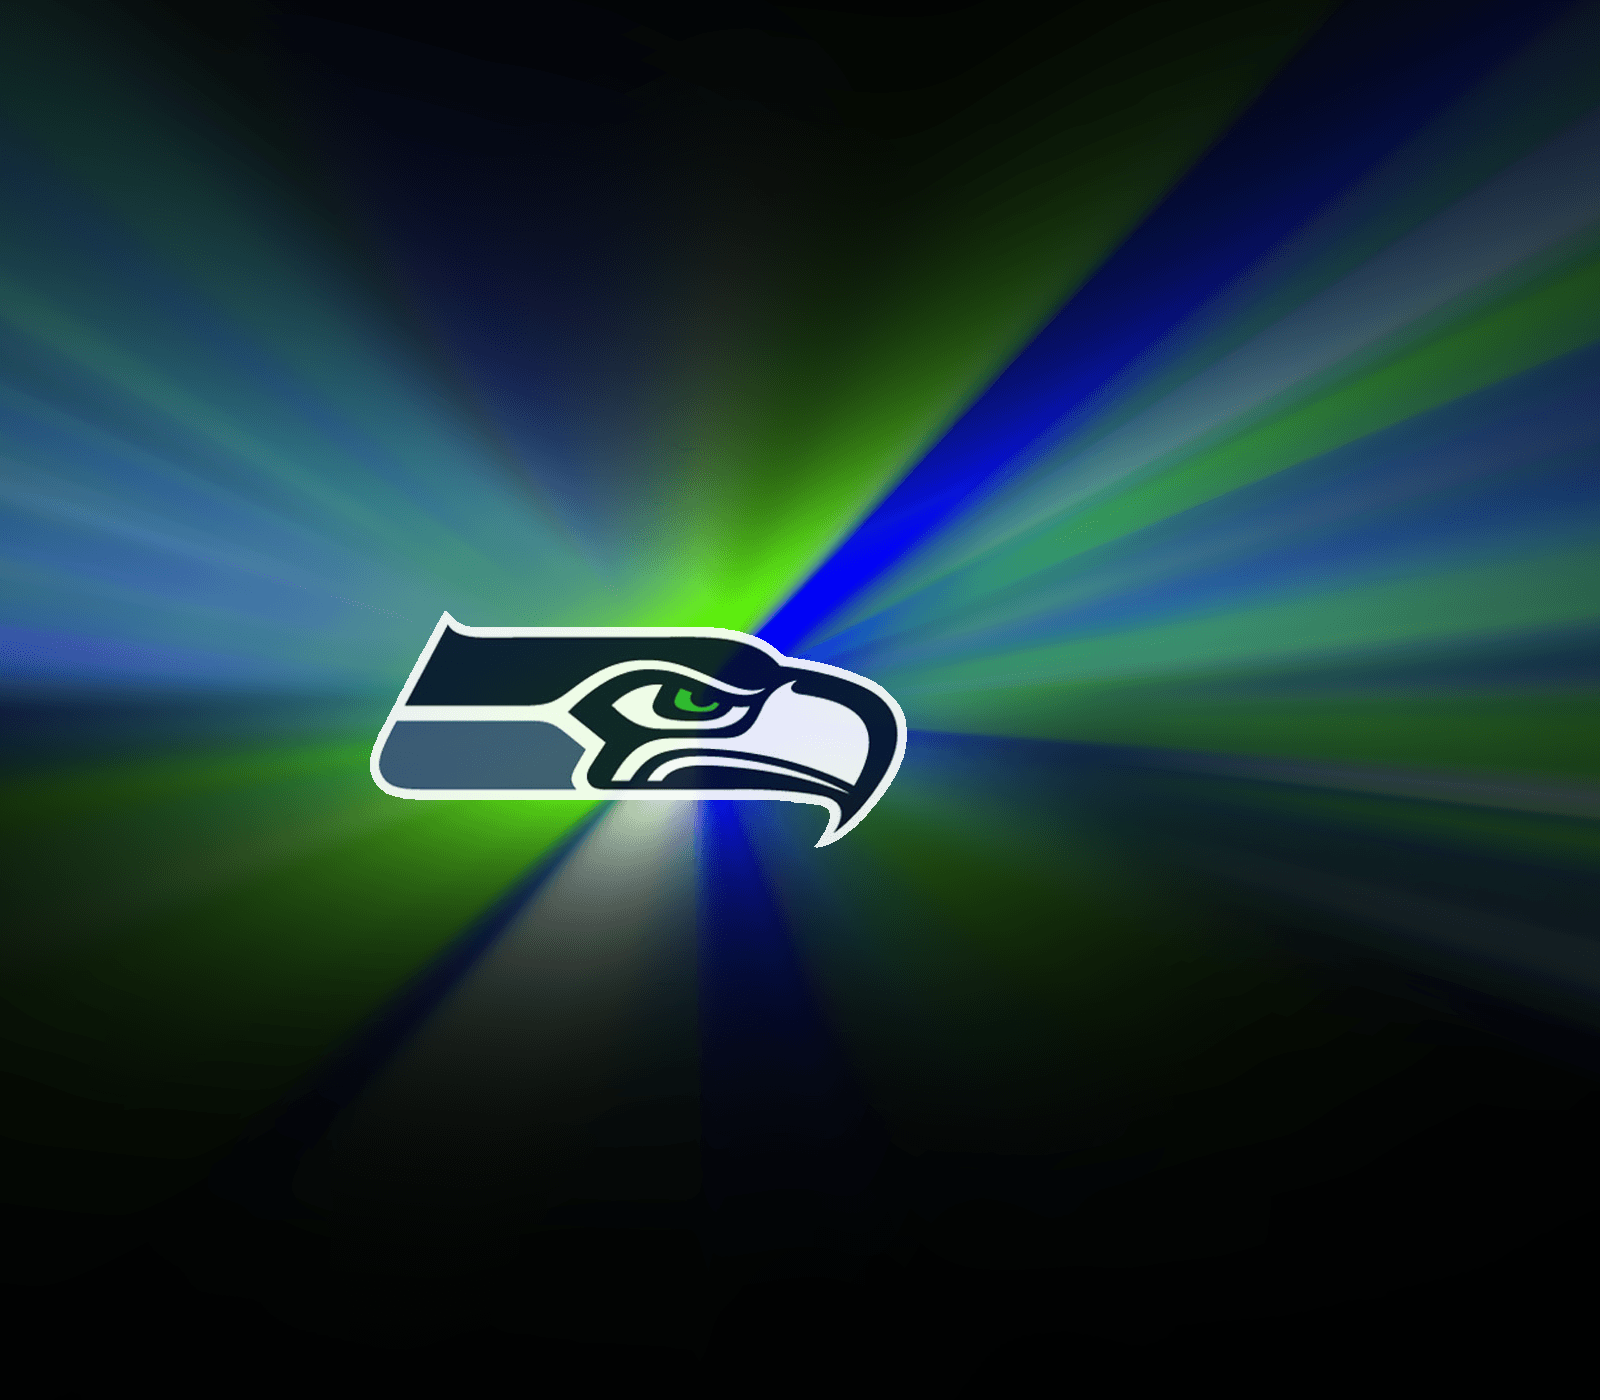 Seahawks Wallpaper seahawk wallpapers - wallpaper cave